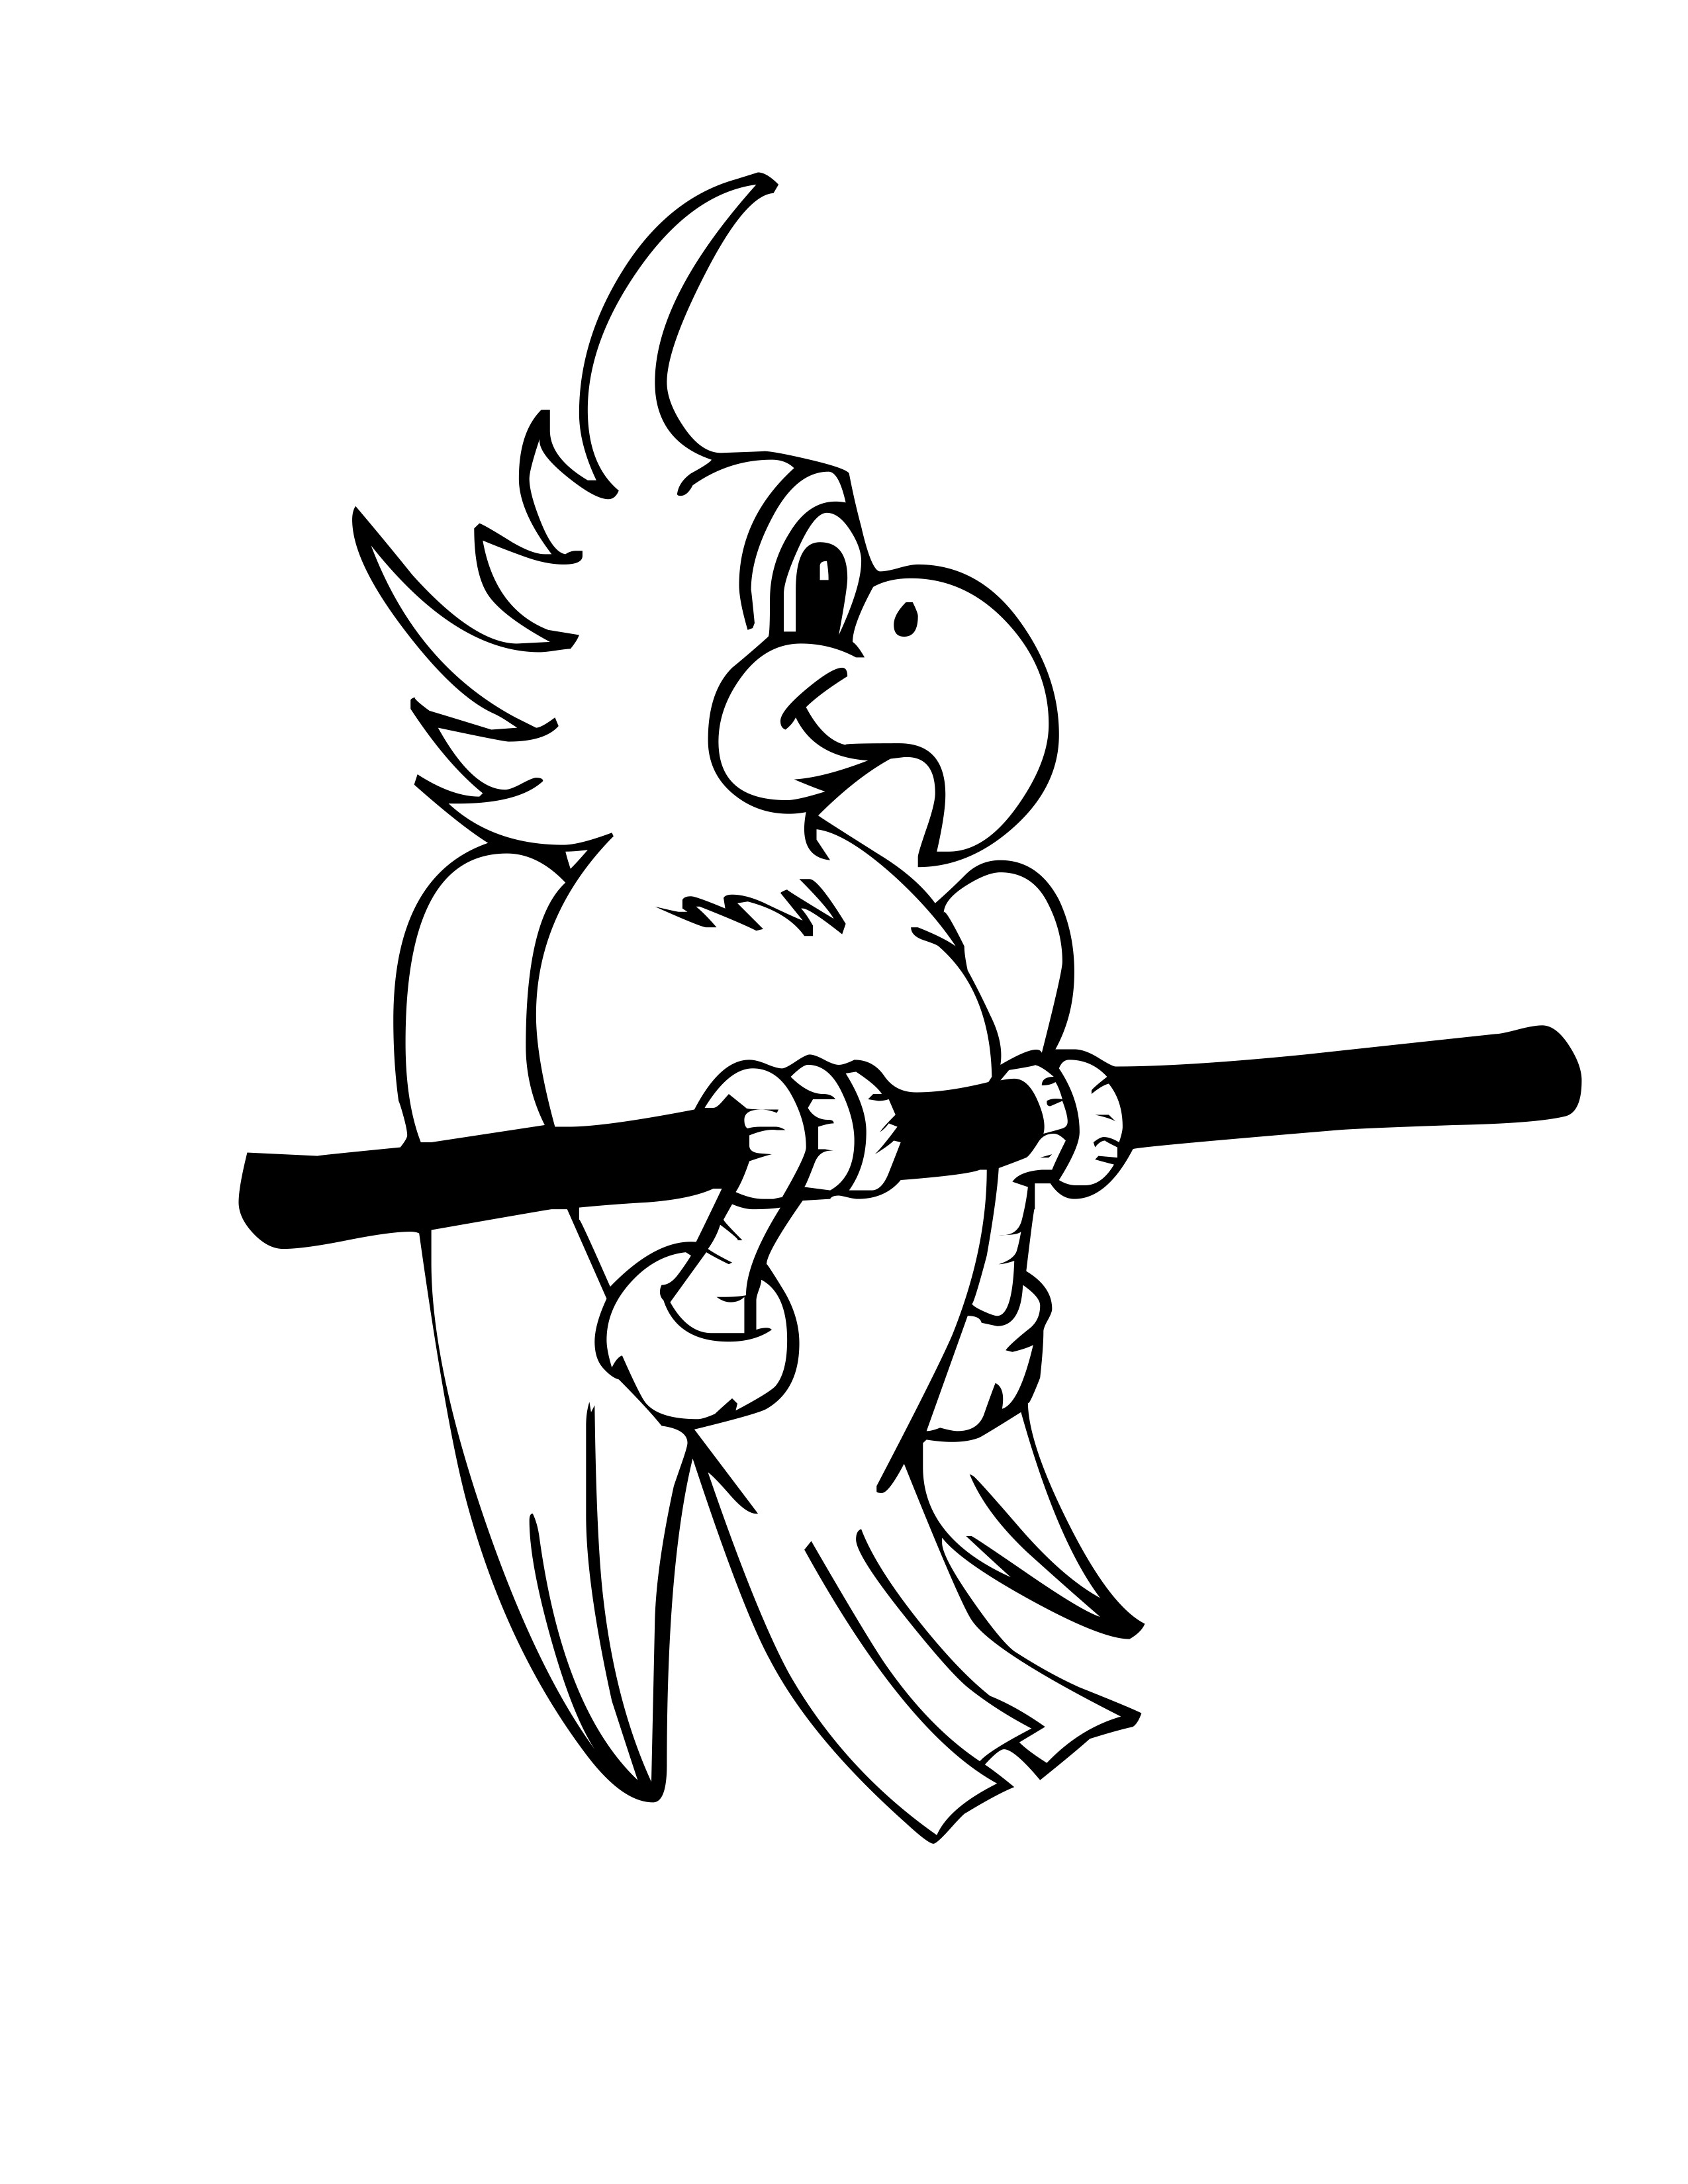 birds coloring pages bird coloring pages coloring pages birds 1 1